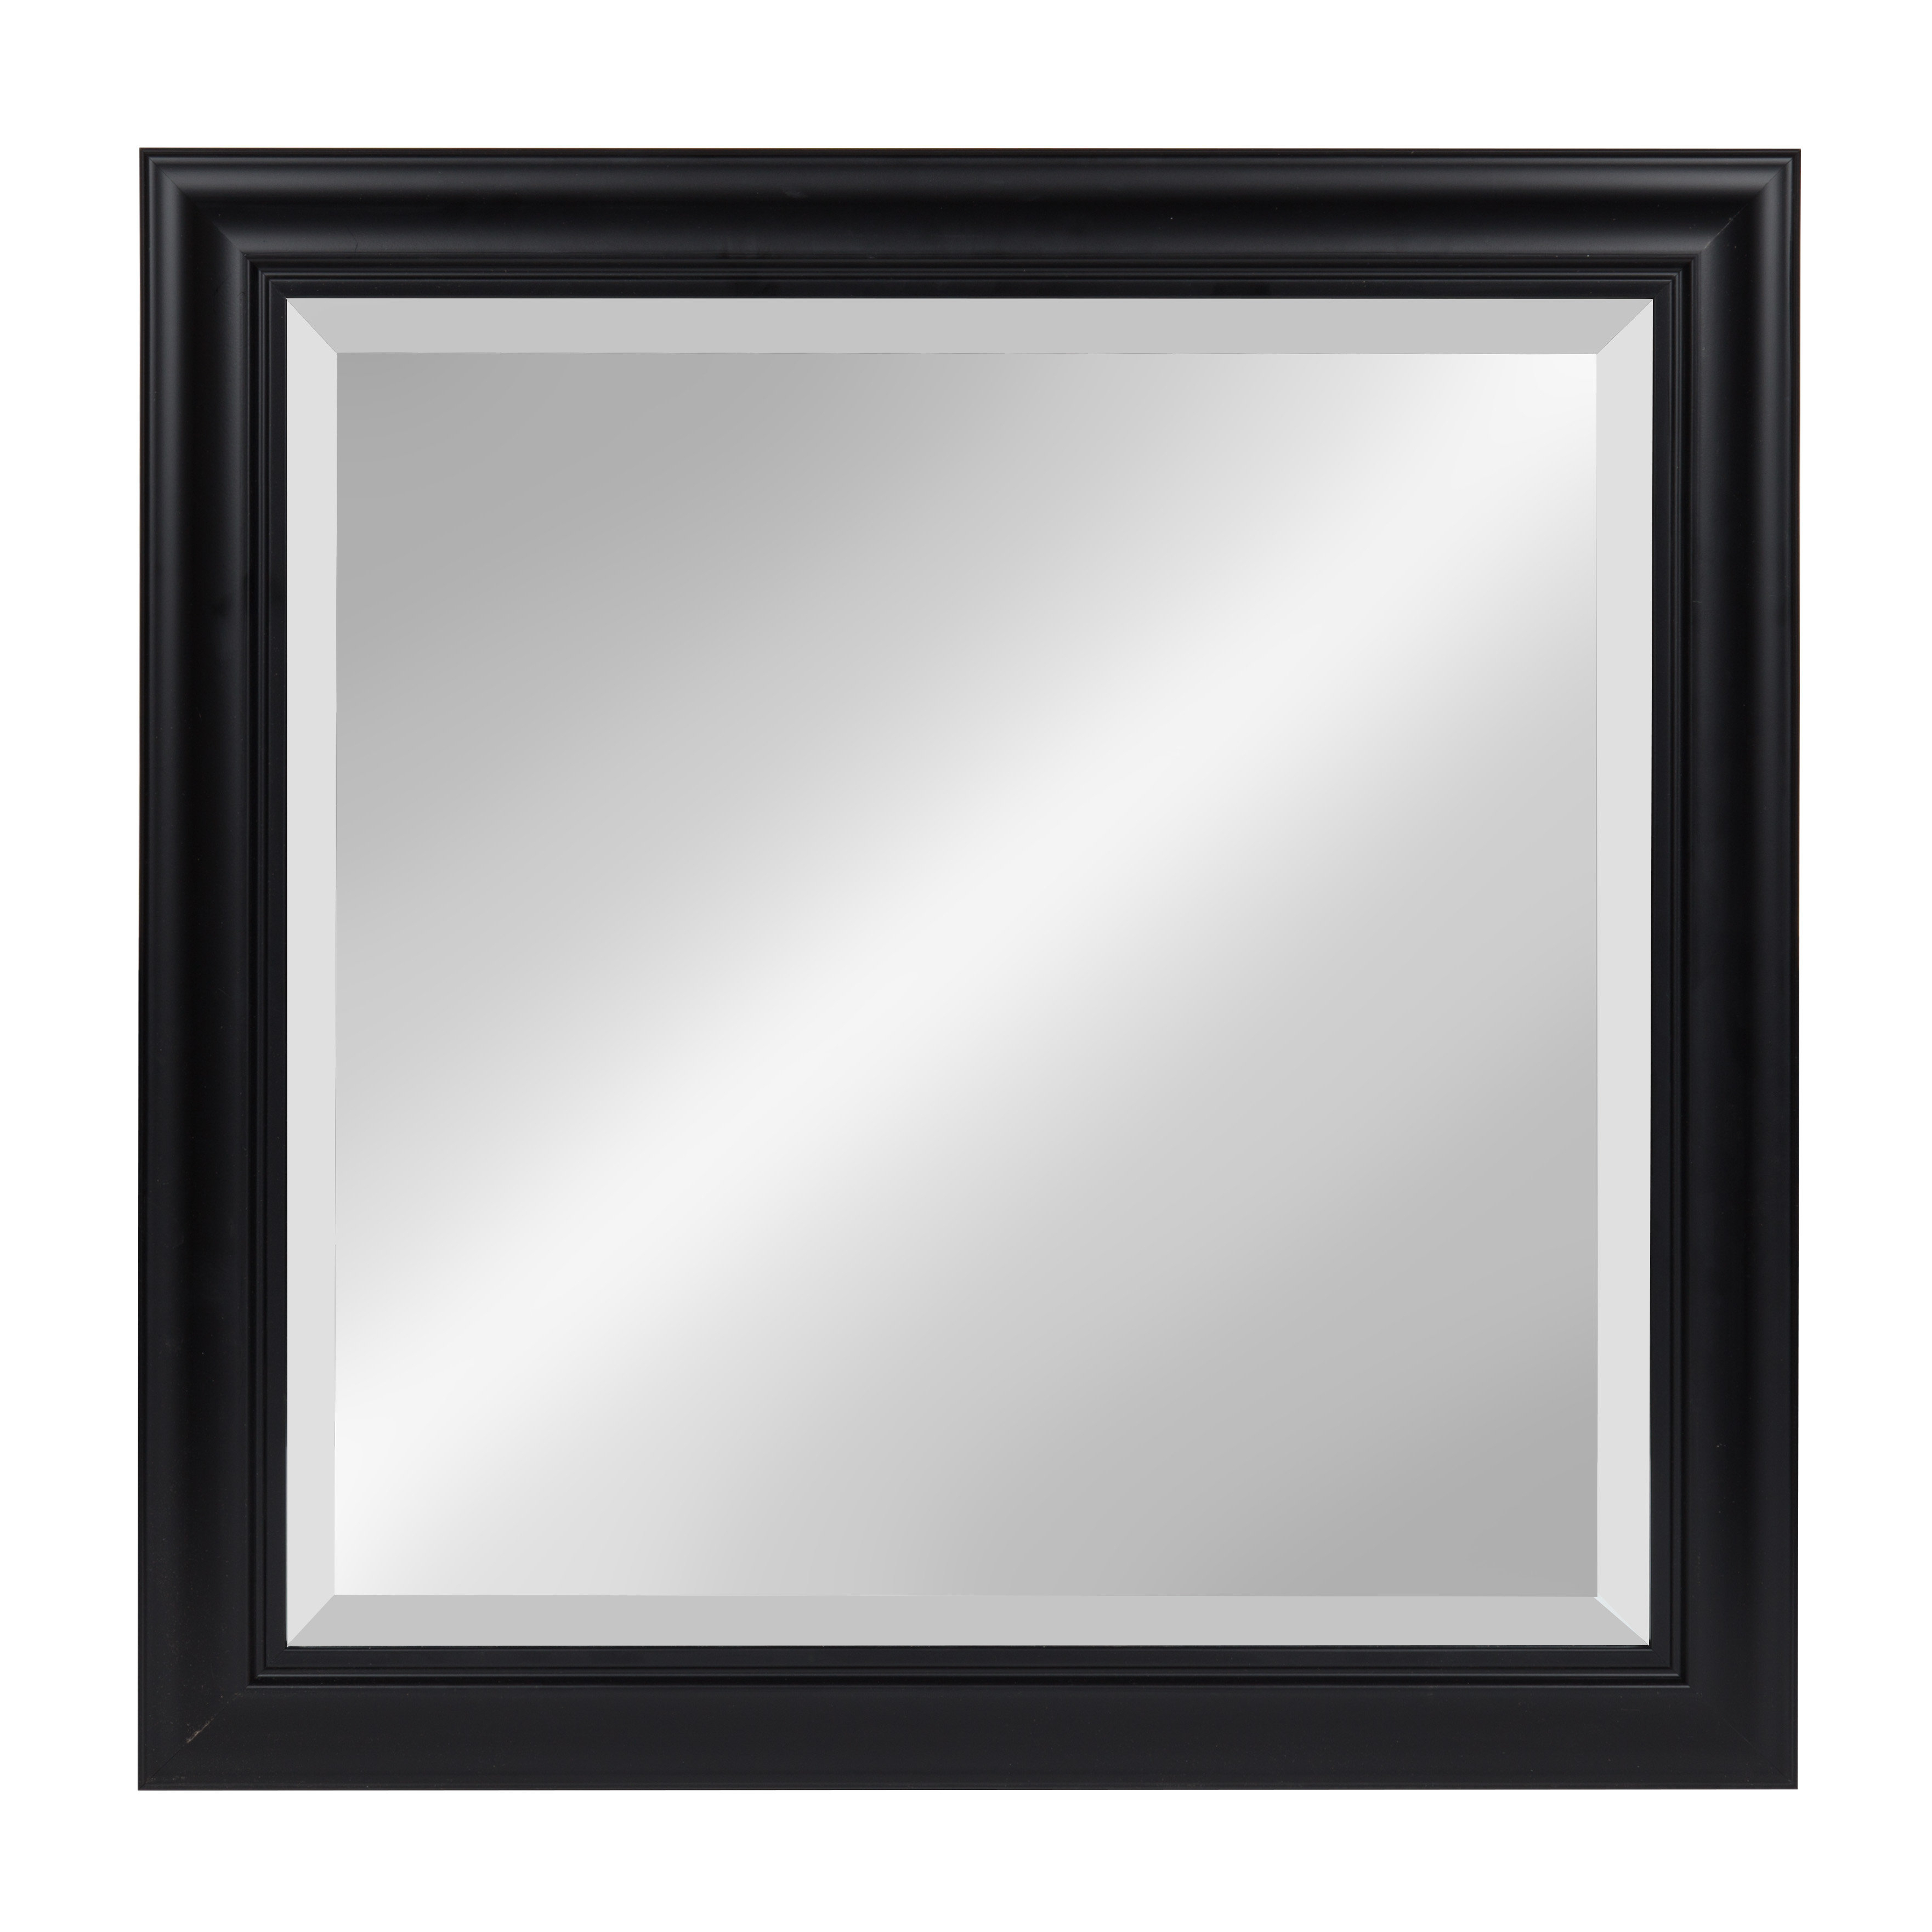 Hegarty Square Framed Accent Mirror Regarding Dedrick Decorative Framed Modern And Contemporary Wall Mirrors (View 16 of 20)